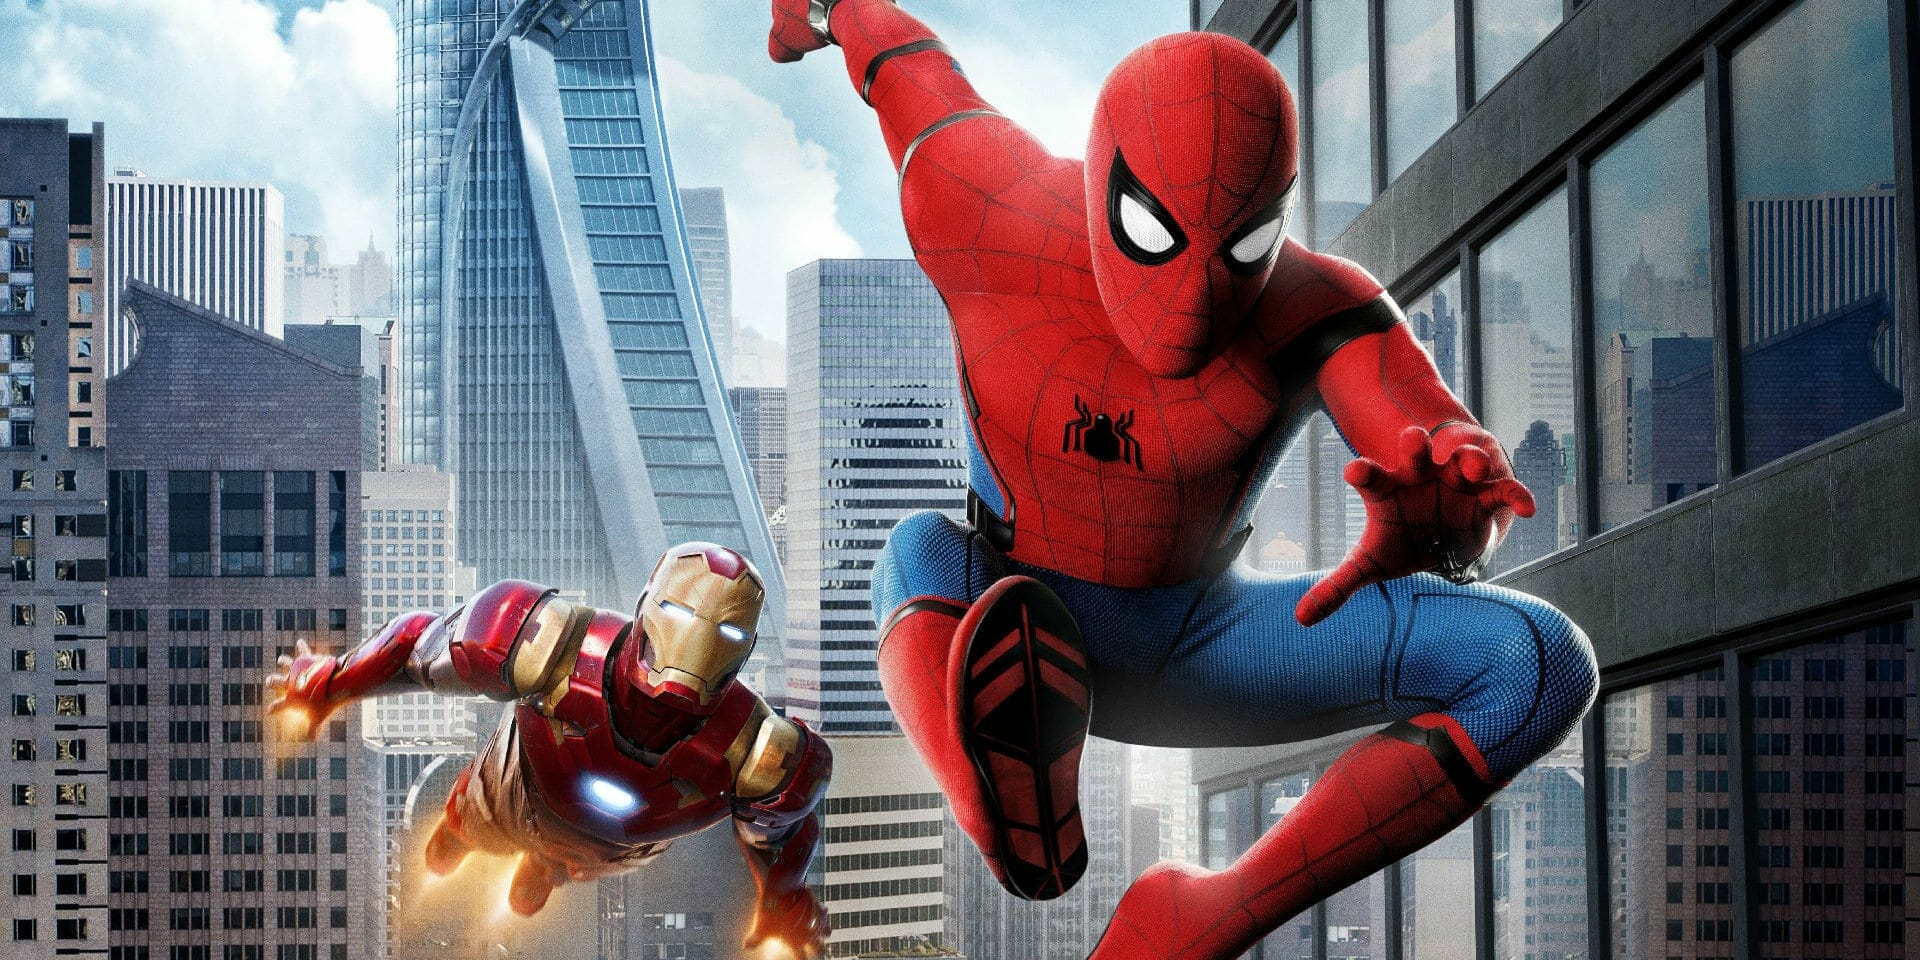 Spiderman and Ironman - Sony is planning distinctive spin-offs to Spider-man Homecoming!